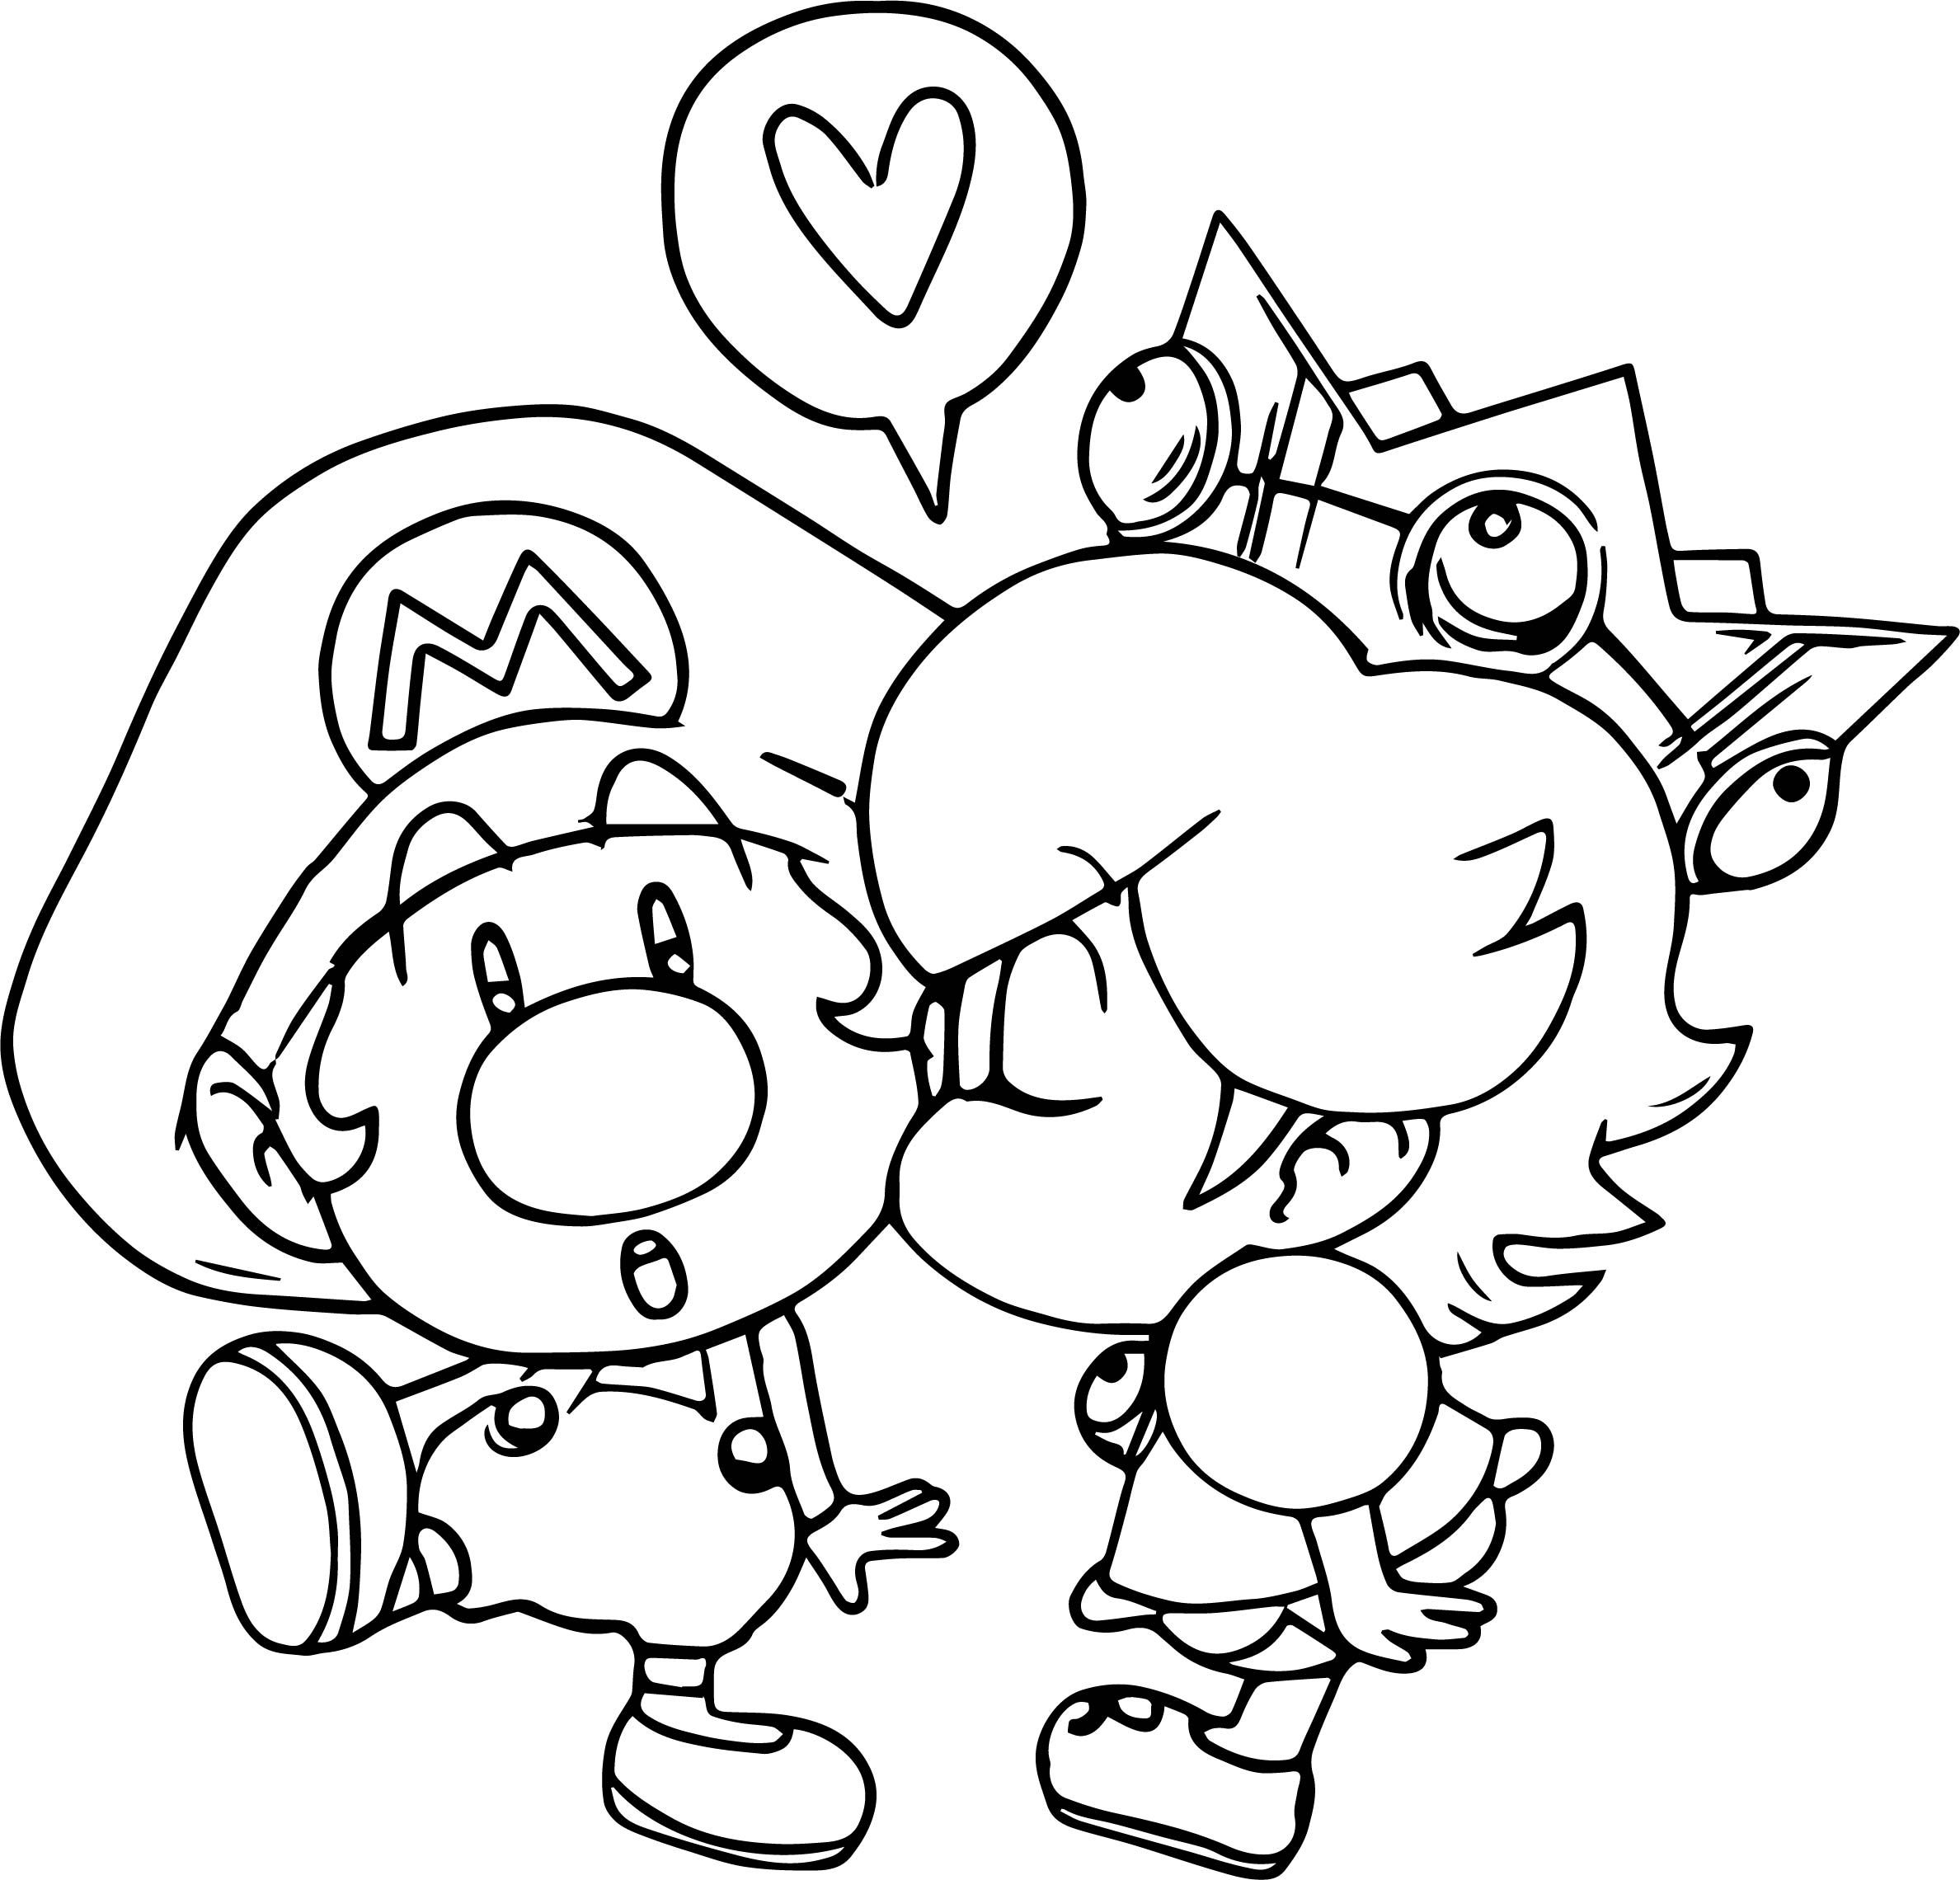 Awesome Mario And Daisy Coloring Page Super Mario Coloring Pages Mario Coloring Pages Avengers Coloring Pages